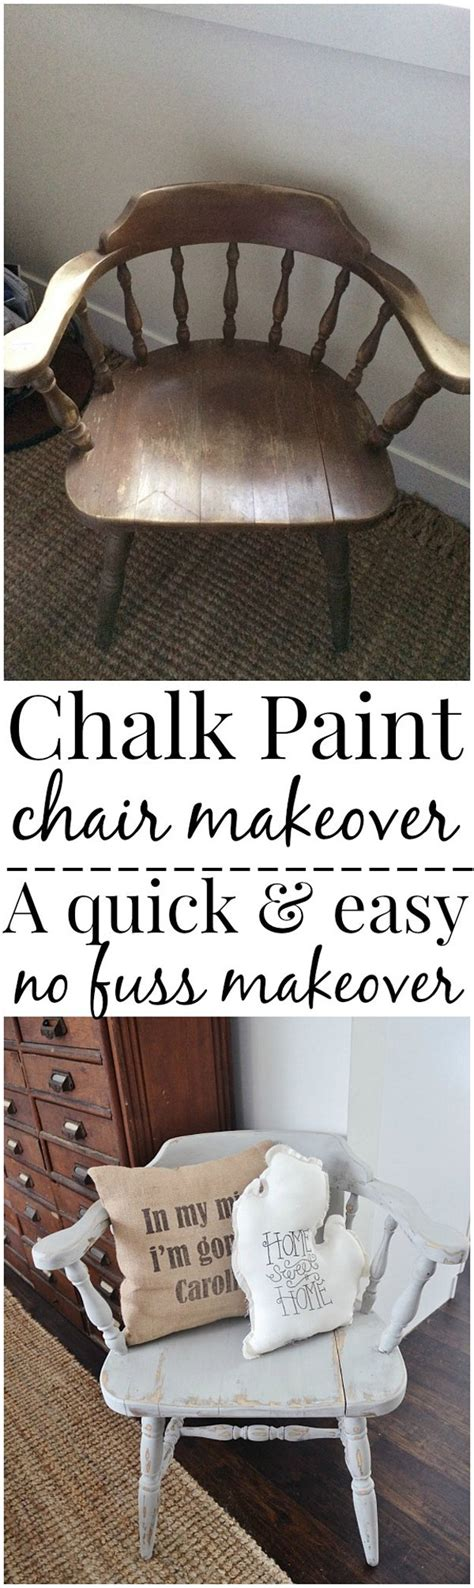 chalk paint chair ideas chalk paint furniture ideas diy projects do it yourself